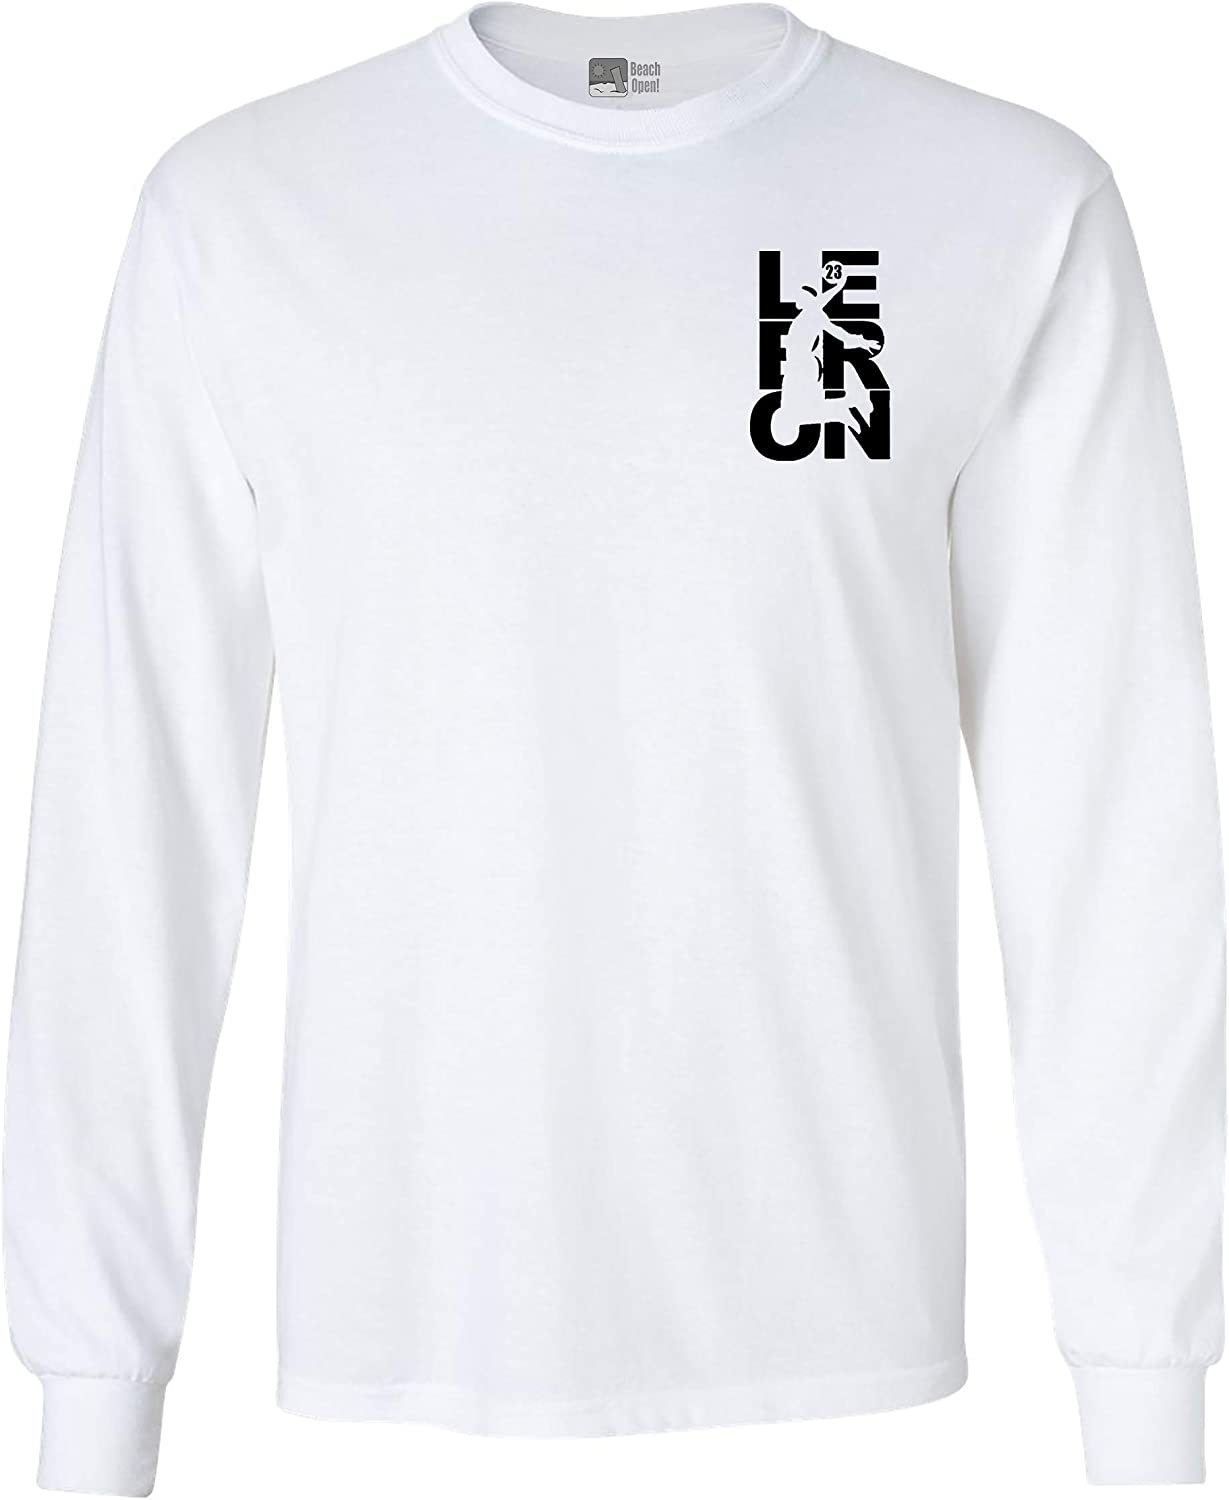 Long Sleeve Adult T-Shirt We OFFer at cheap prices Lebron Fan Ba Cleveland Front and San Jose Mall Wear